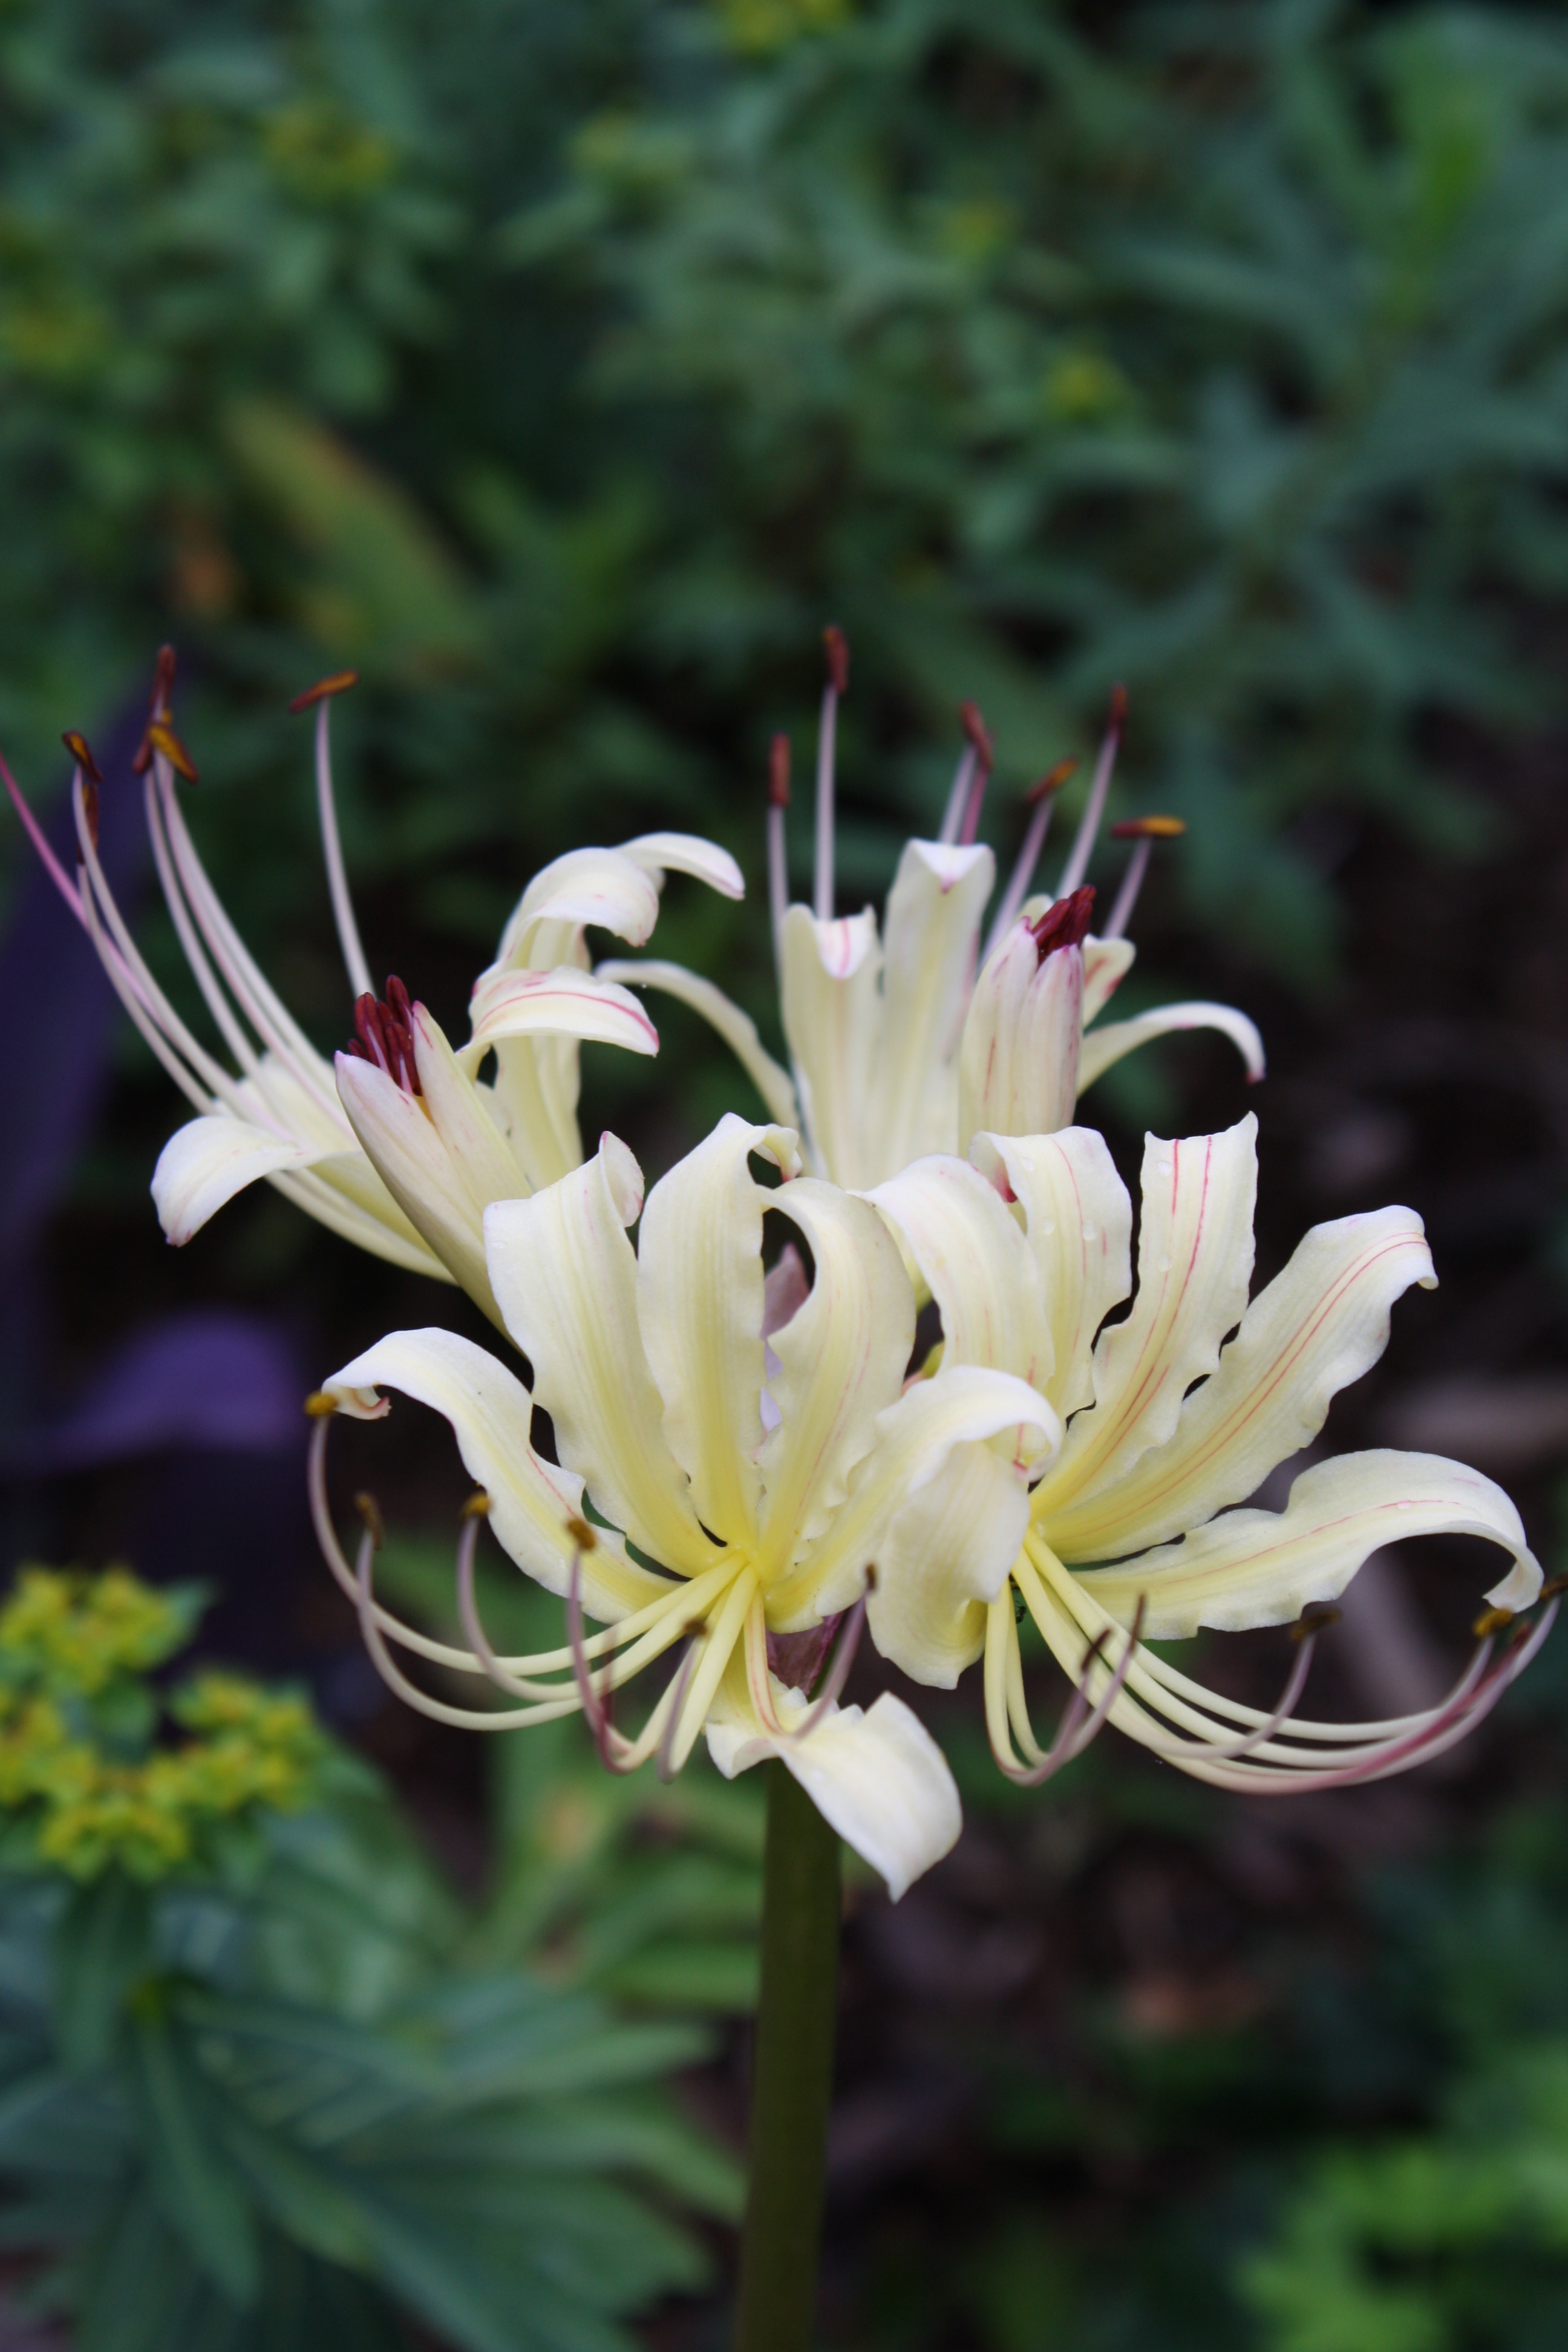 Lycoris x albiflora 'Summer Passion' @ JLBG - a selection of a Chinese import by Frank Galloway of a hybrid of Lycoris aurea x radiata var. pumila - named by JLBG/PDN